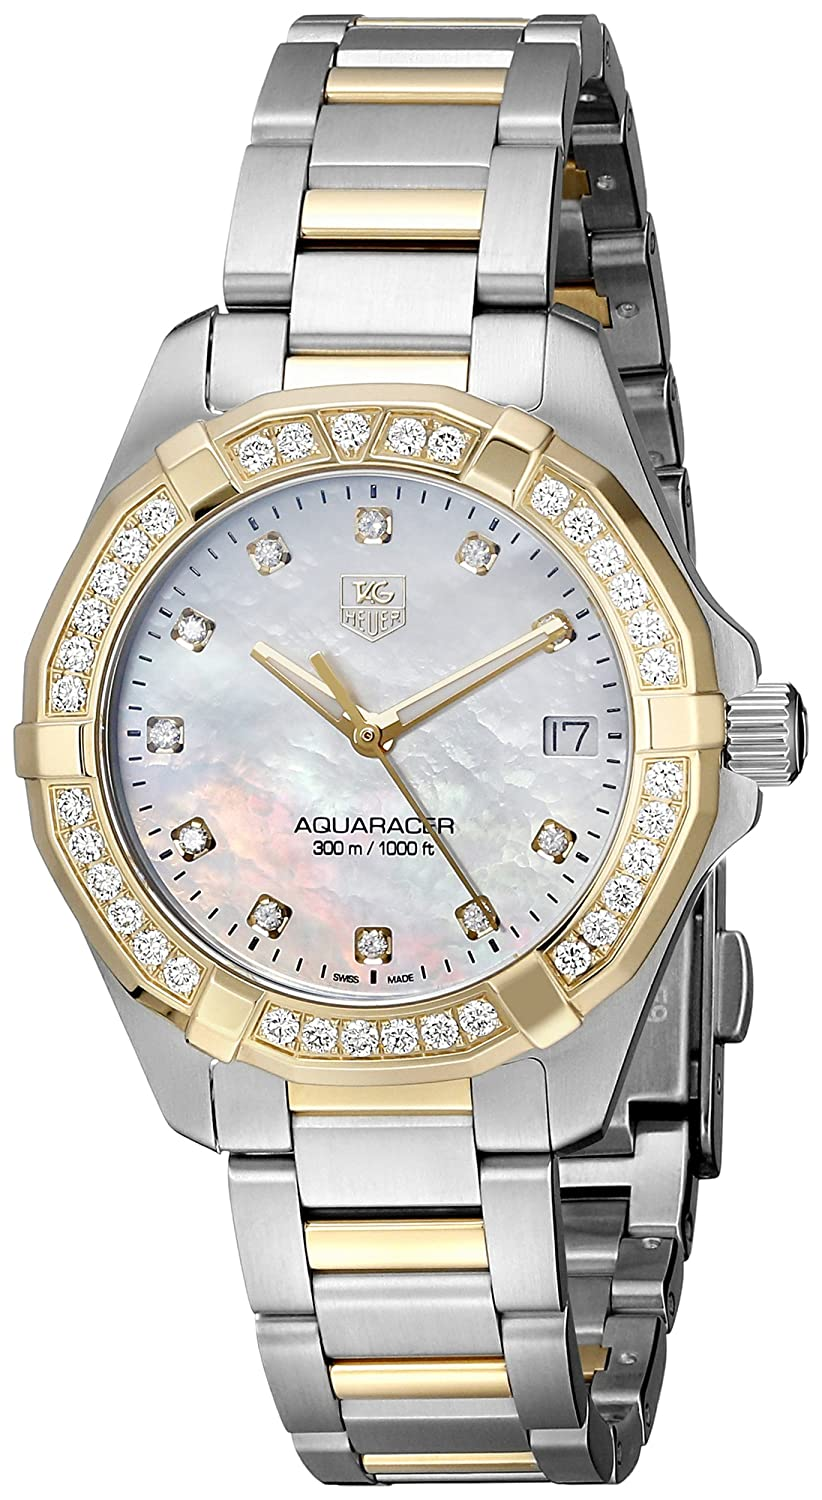 51b7ea915028f Amazon.com  Tag Heuer Women s WAY1353.BD0917 300 Aquaracer Diamond-Accented  Two-Tone Watch  Tag Heuer  Watches